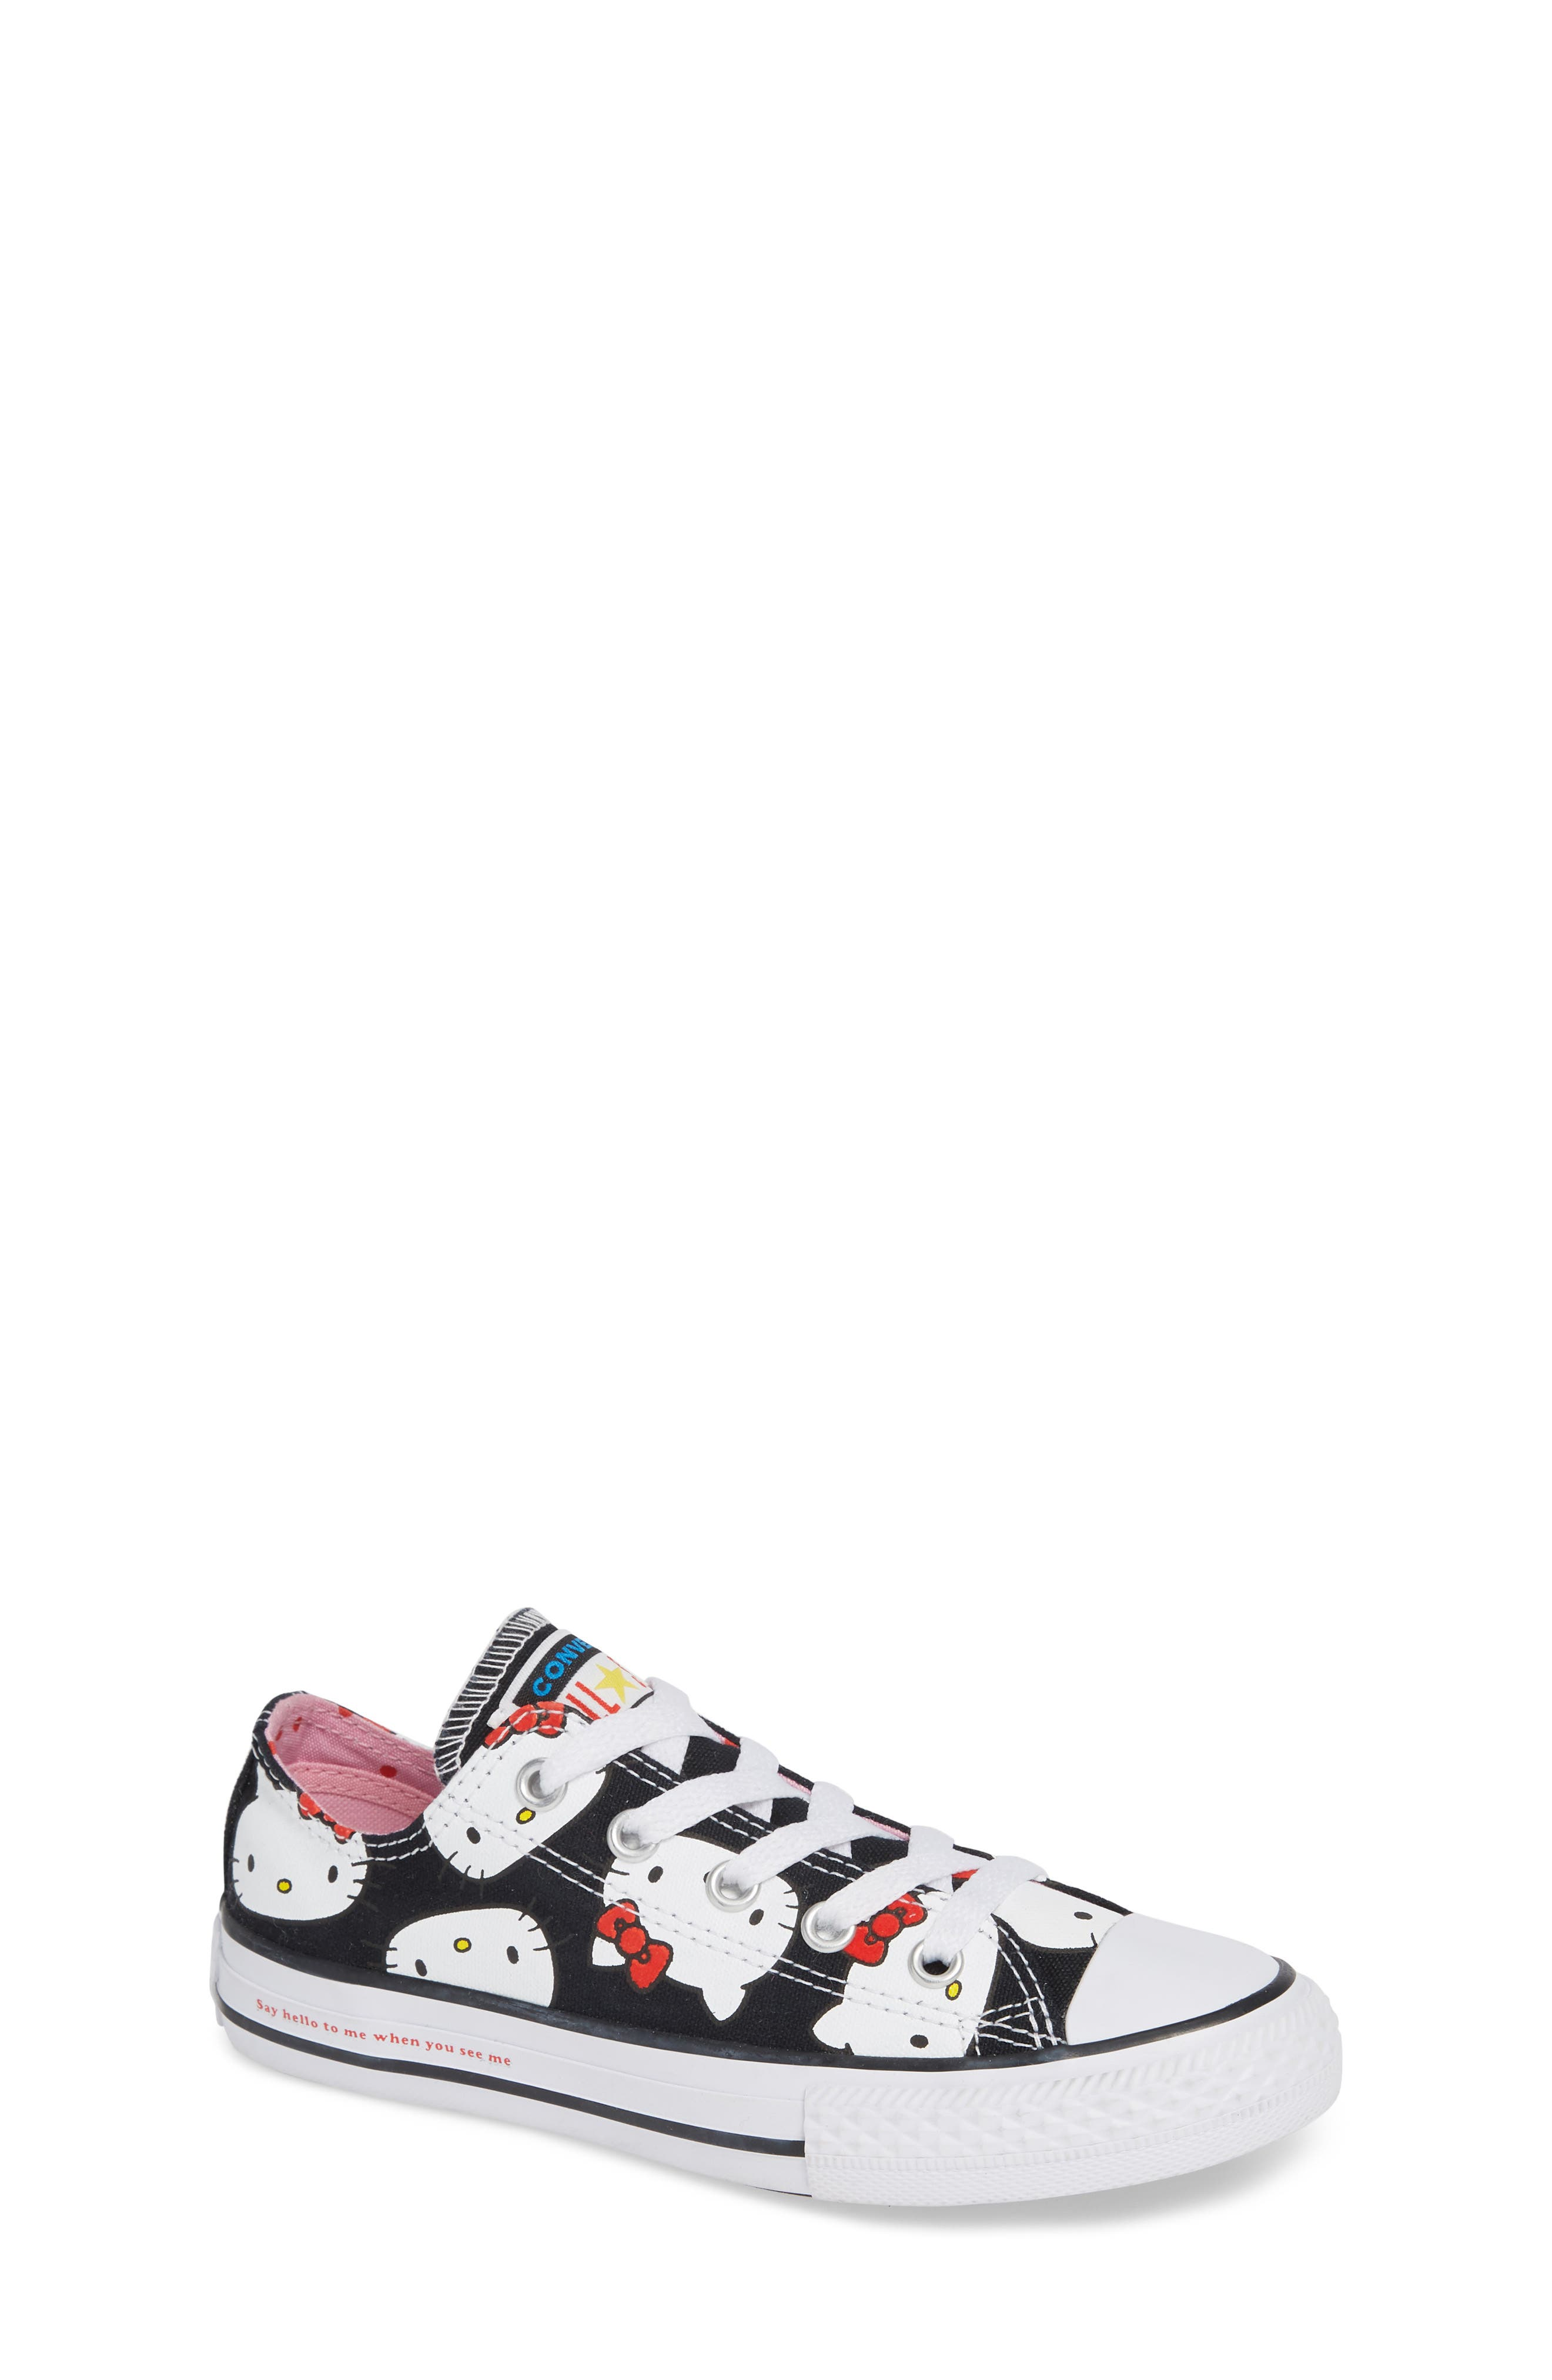 CONVERSE Chuck Taylor<sup>®</sup> All Star<sup>®</sup> Hello Kitty<sup>®</sup> Sneaker, Main, color, 001